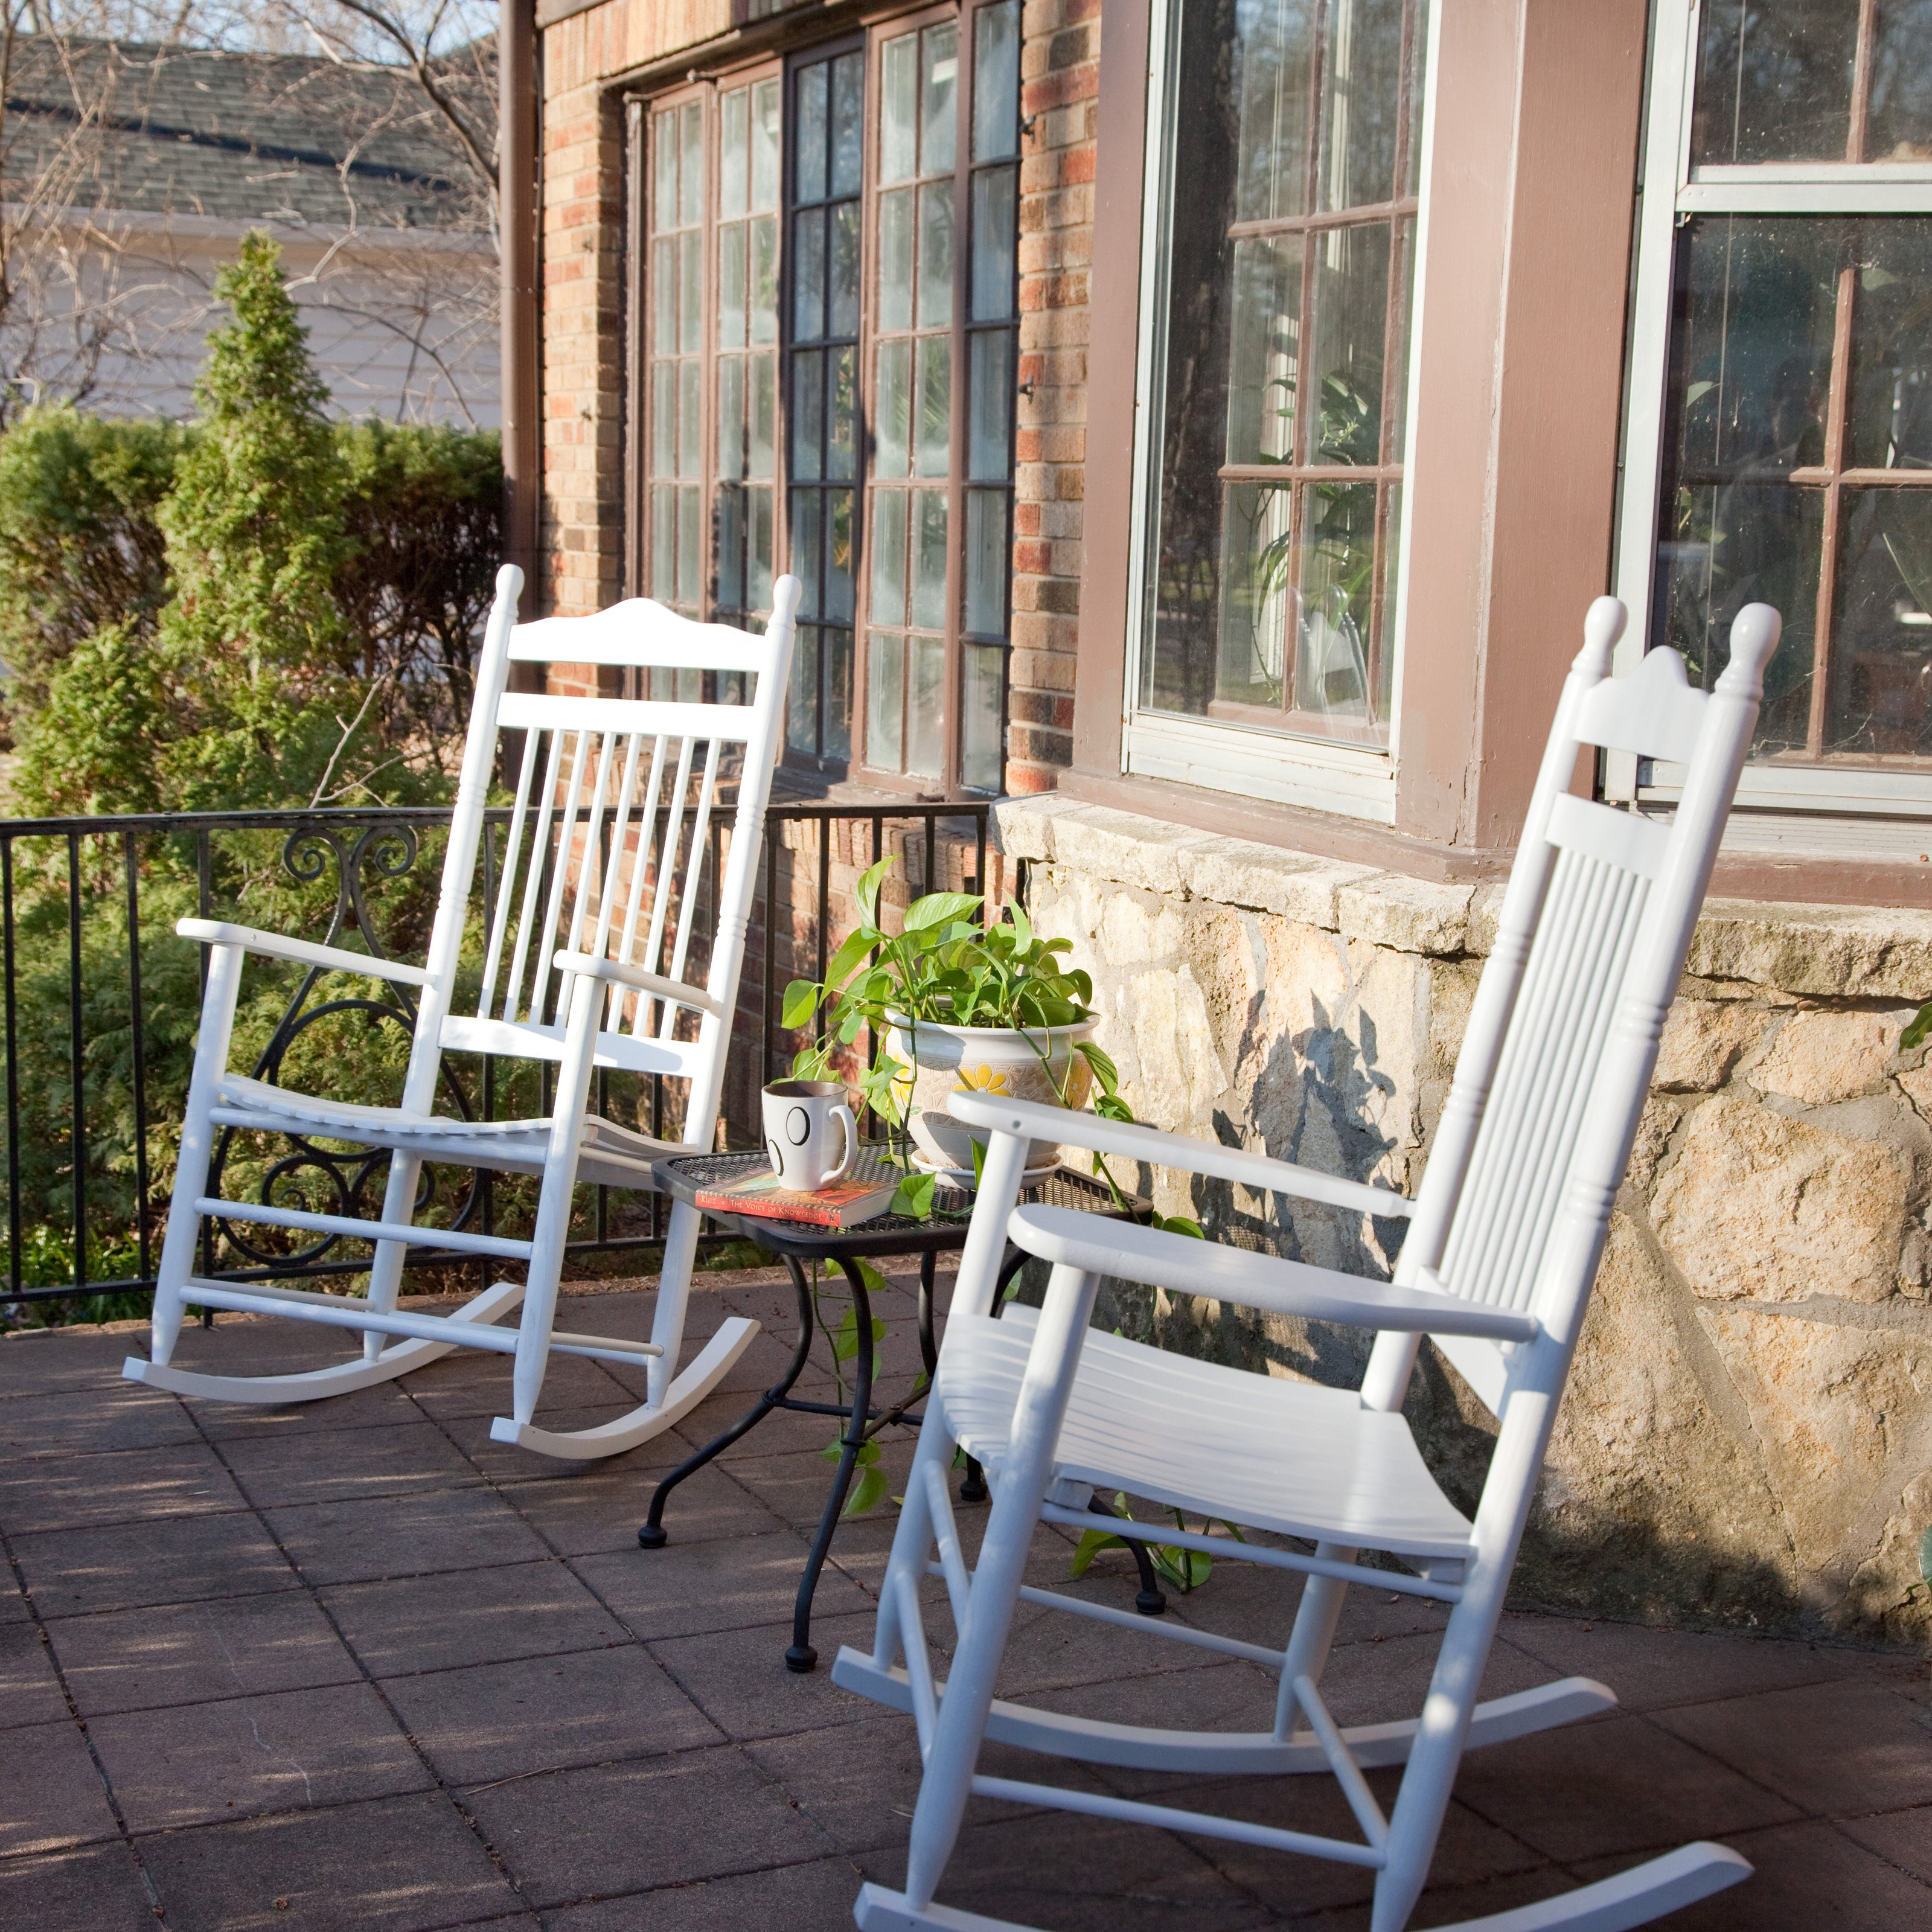 Dixie Seating Indoor/Outdoor Spindle Rocking Chairs   White   Set Of 2